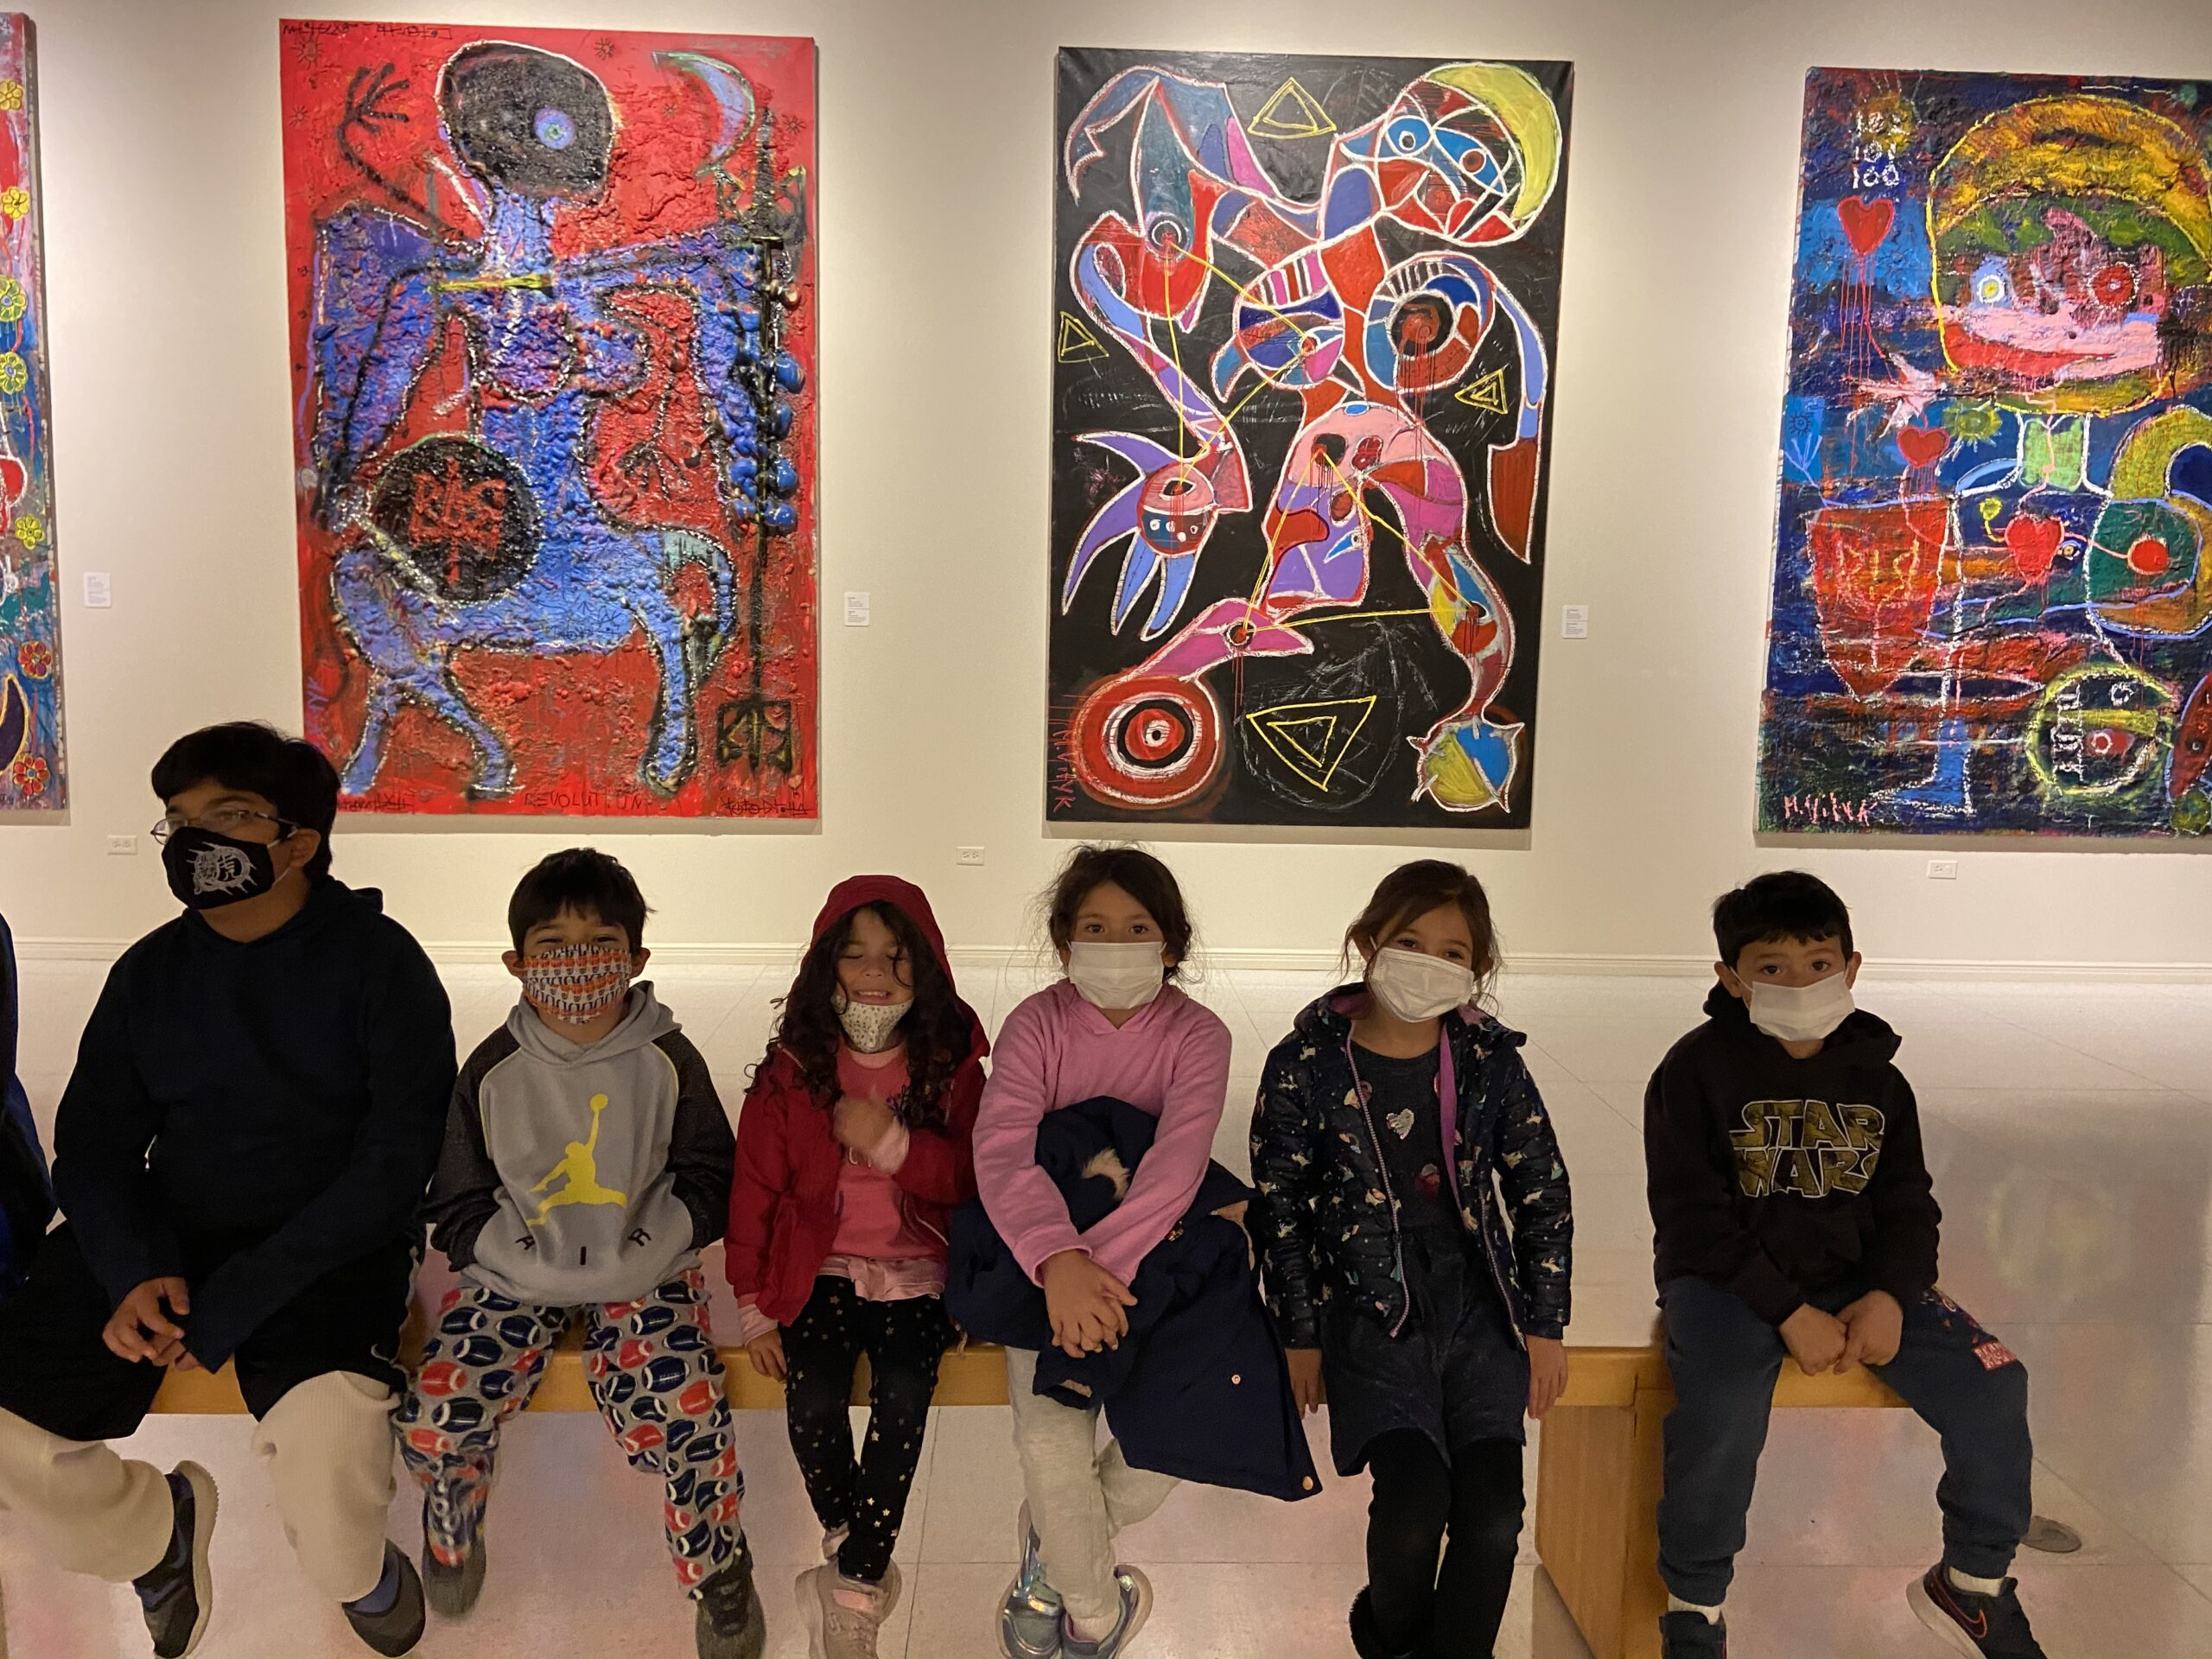 A group of classmates stop by for a visit, admiring the fun art. Photo courtesy of Vanessa Vasquez, @homeschoolme